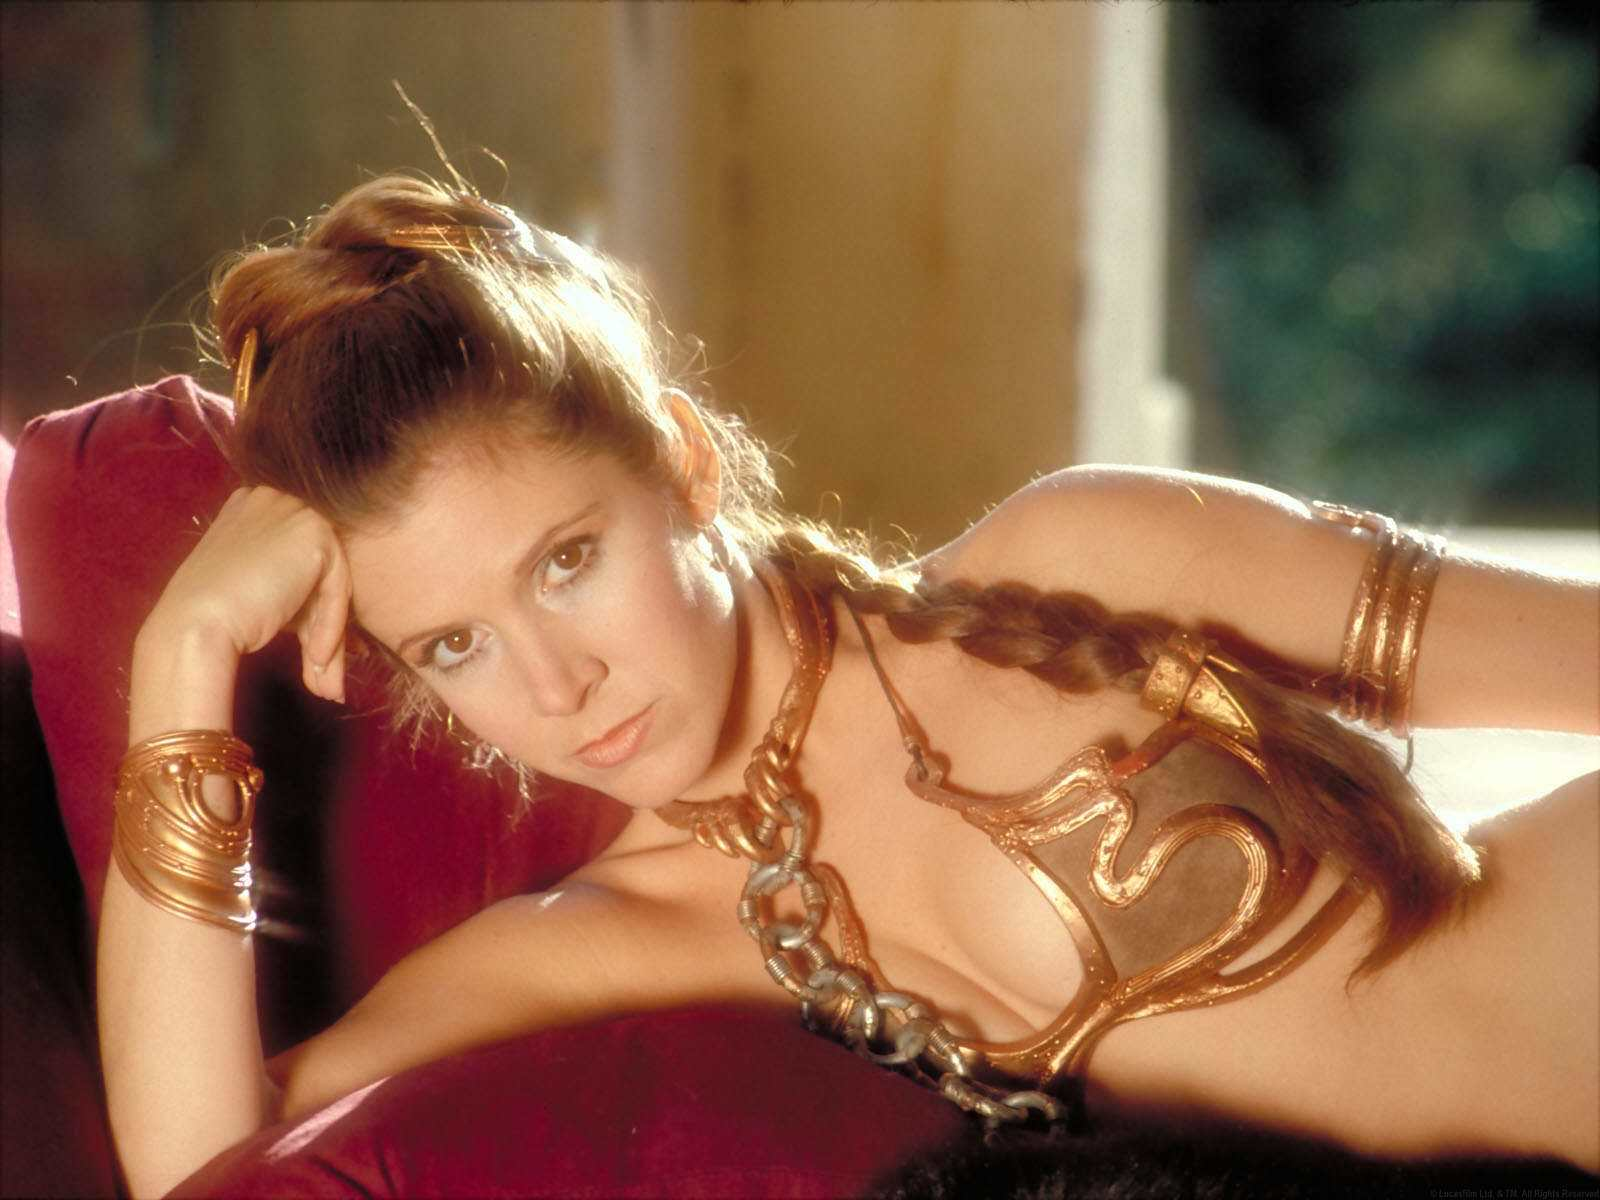 star wars Carrie Fisher HD Wallpaper